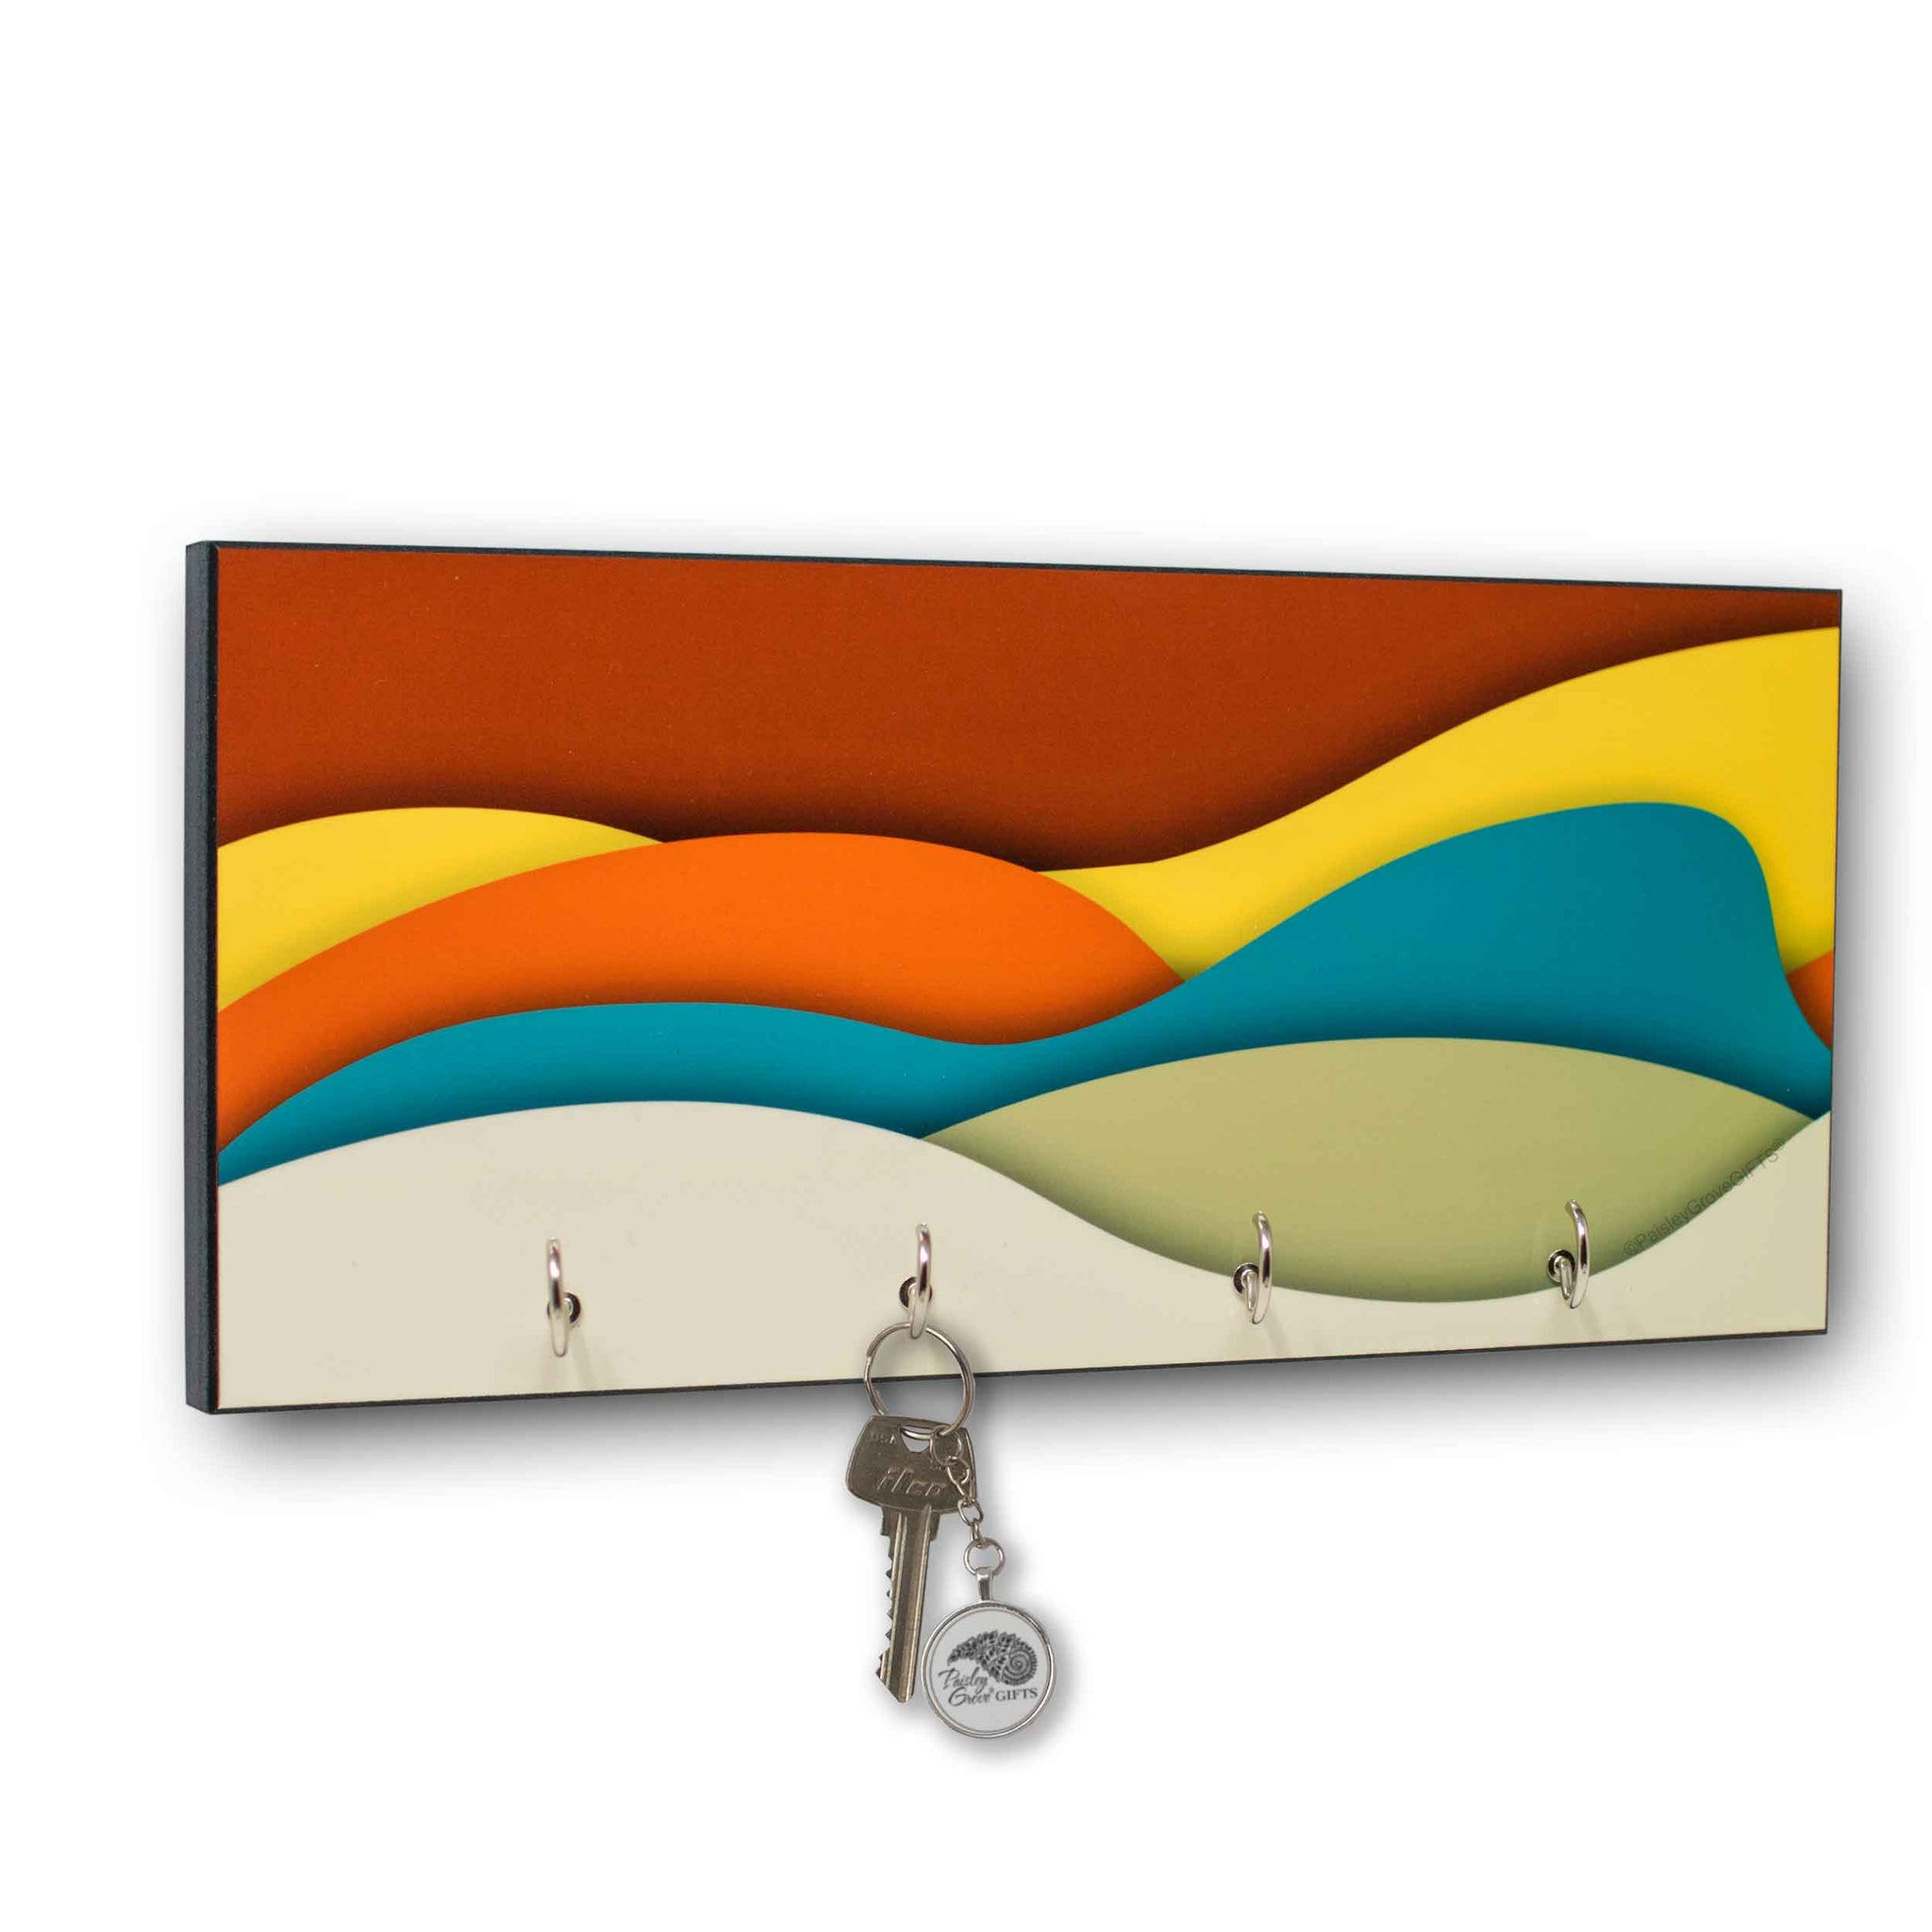 CopyrightPaisleyGroveGIFTS S309a Mid Century Modern key holder for wall Art Deco Decor key organizer